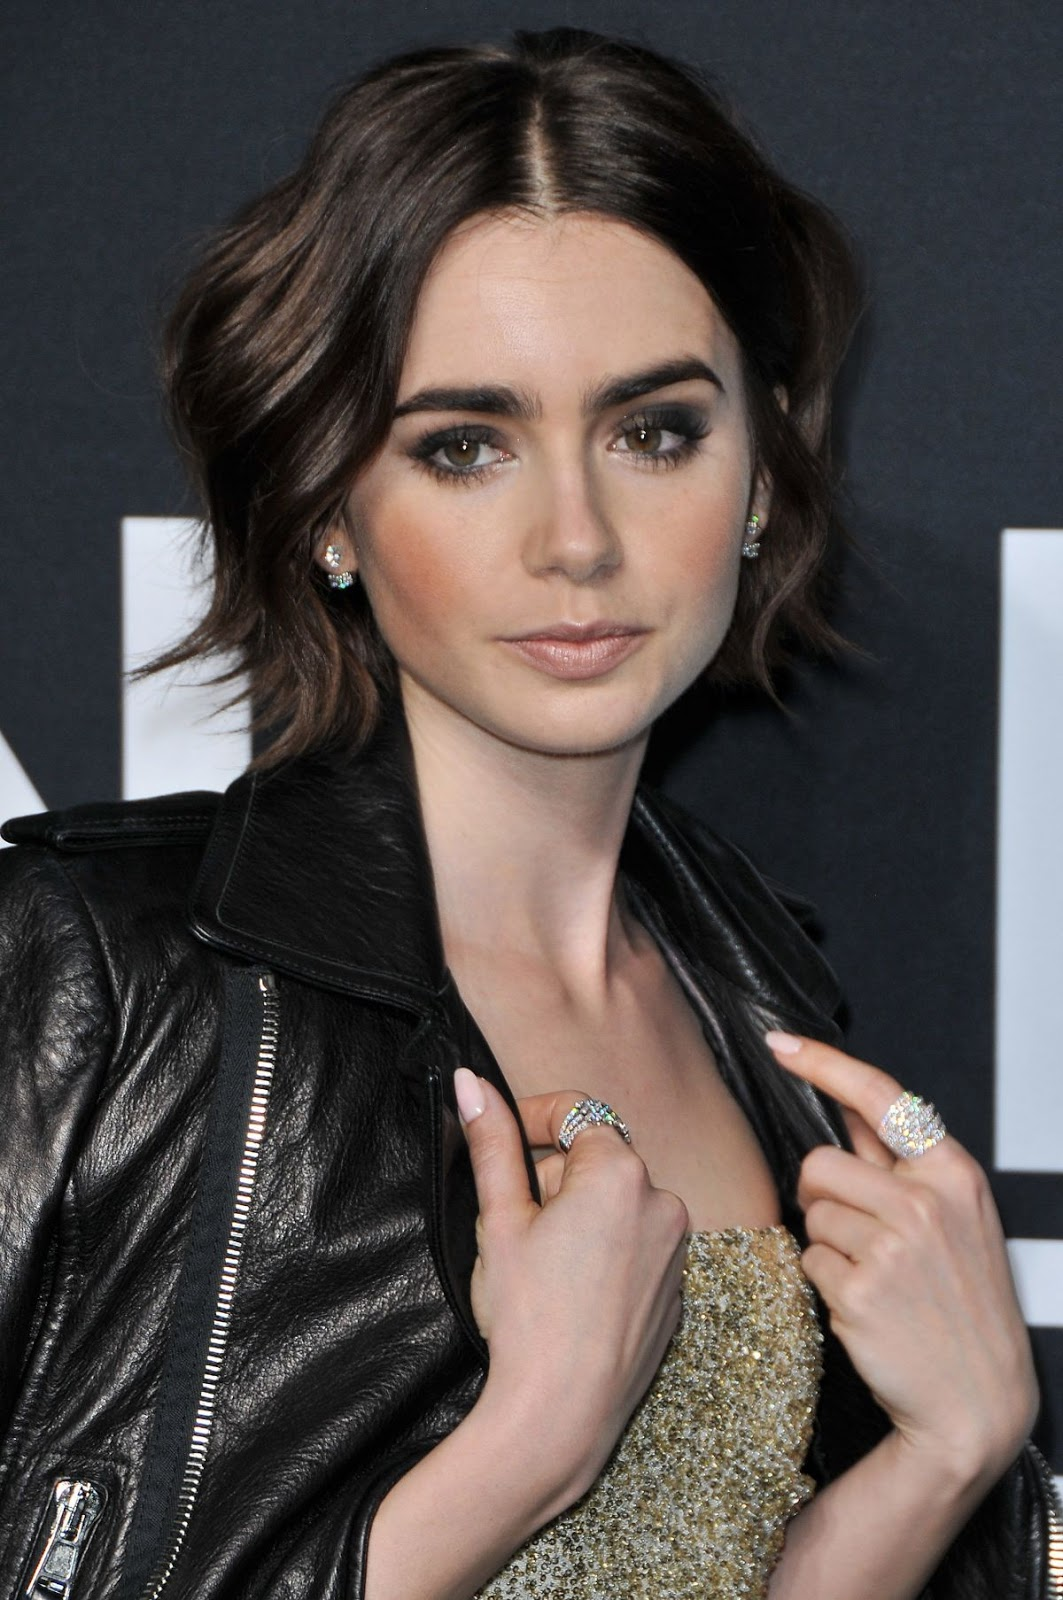 Lily Collins at Saint Laurent Fashion Show in Los Angeles